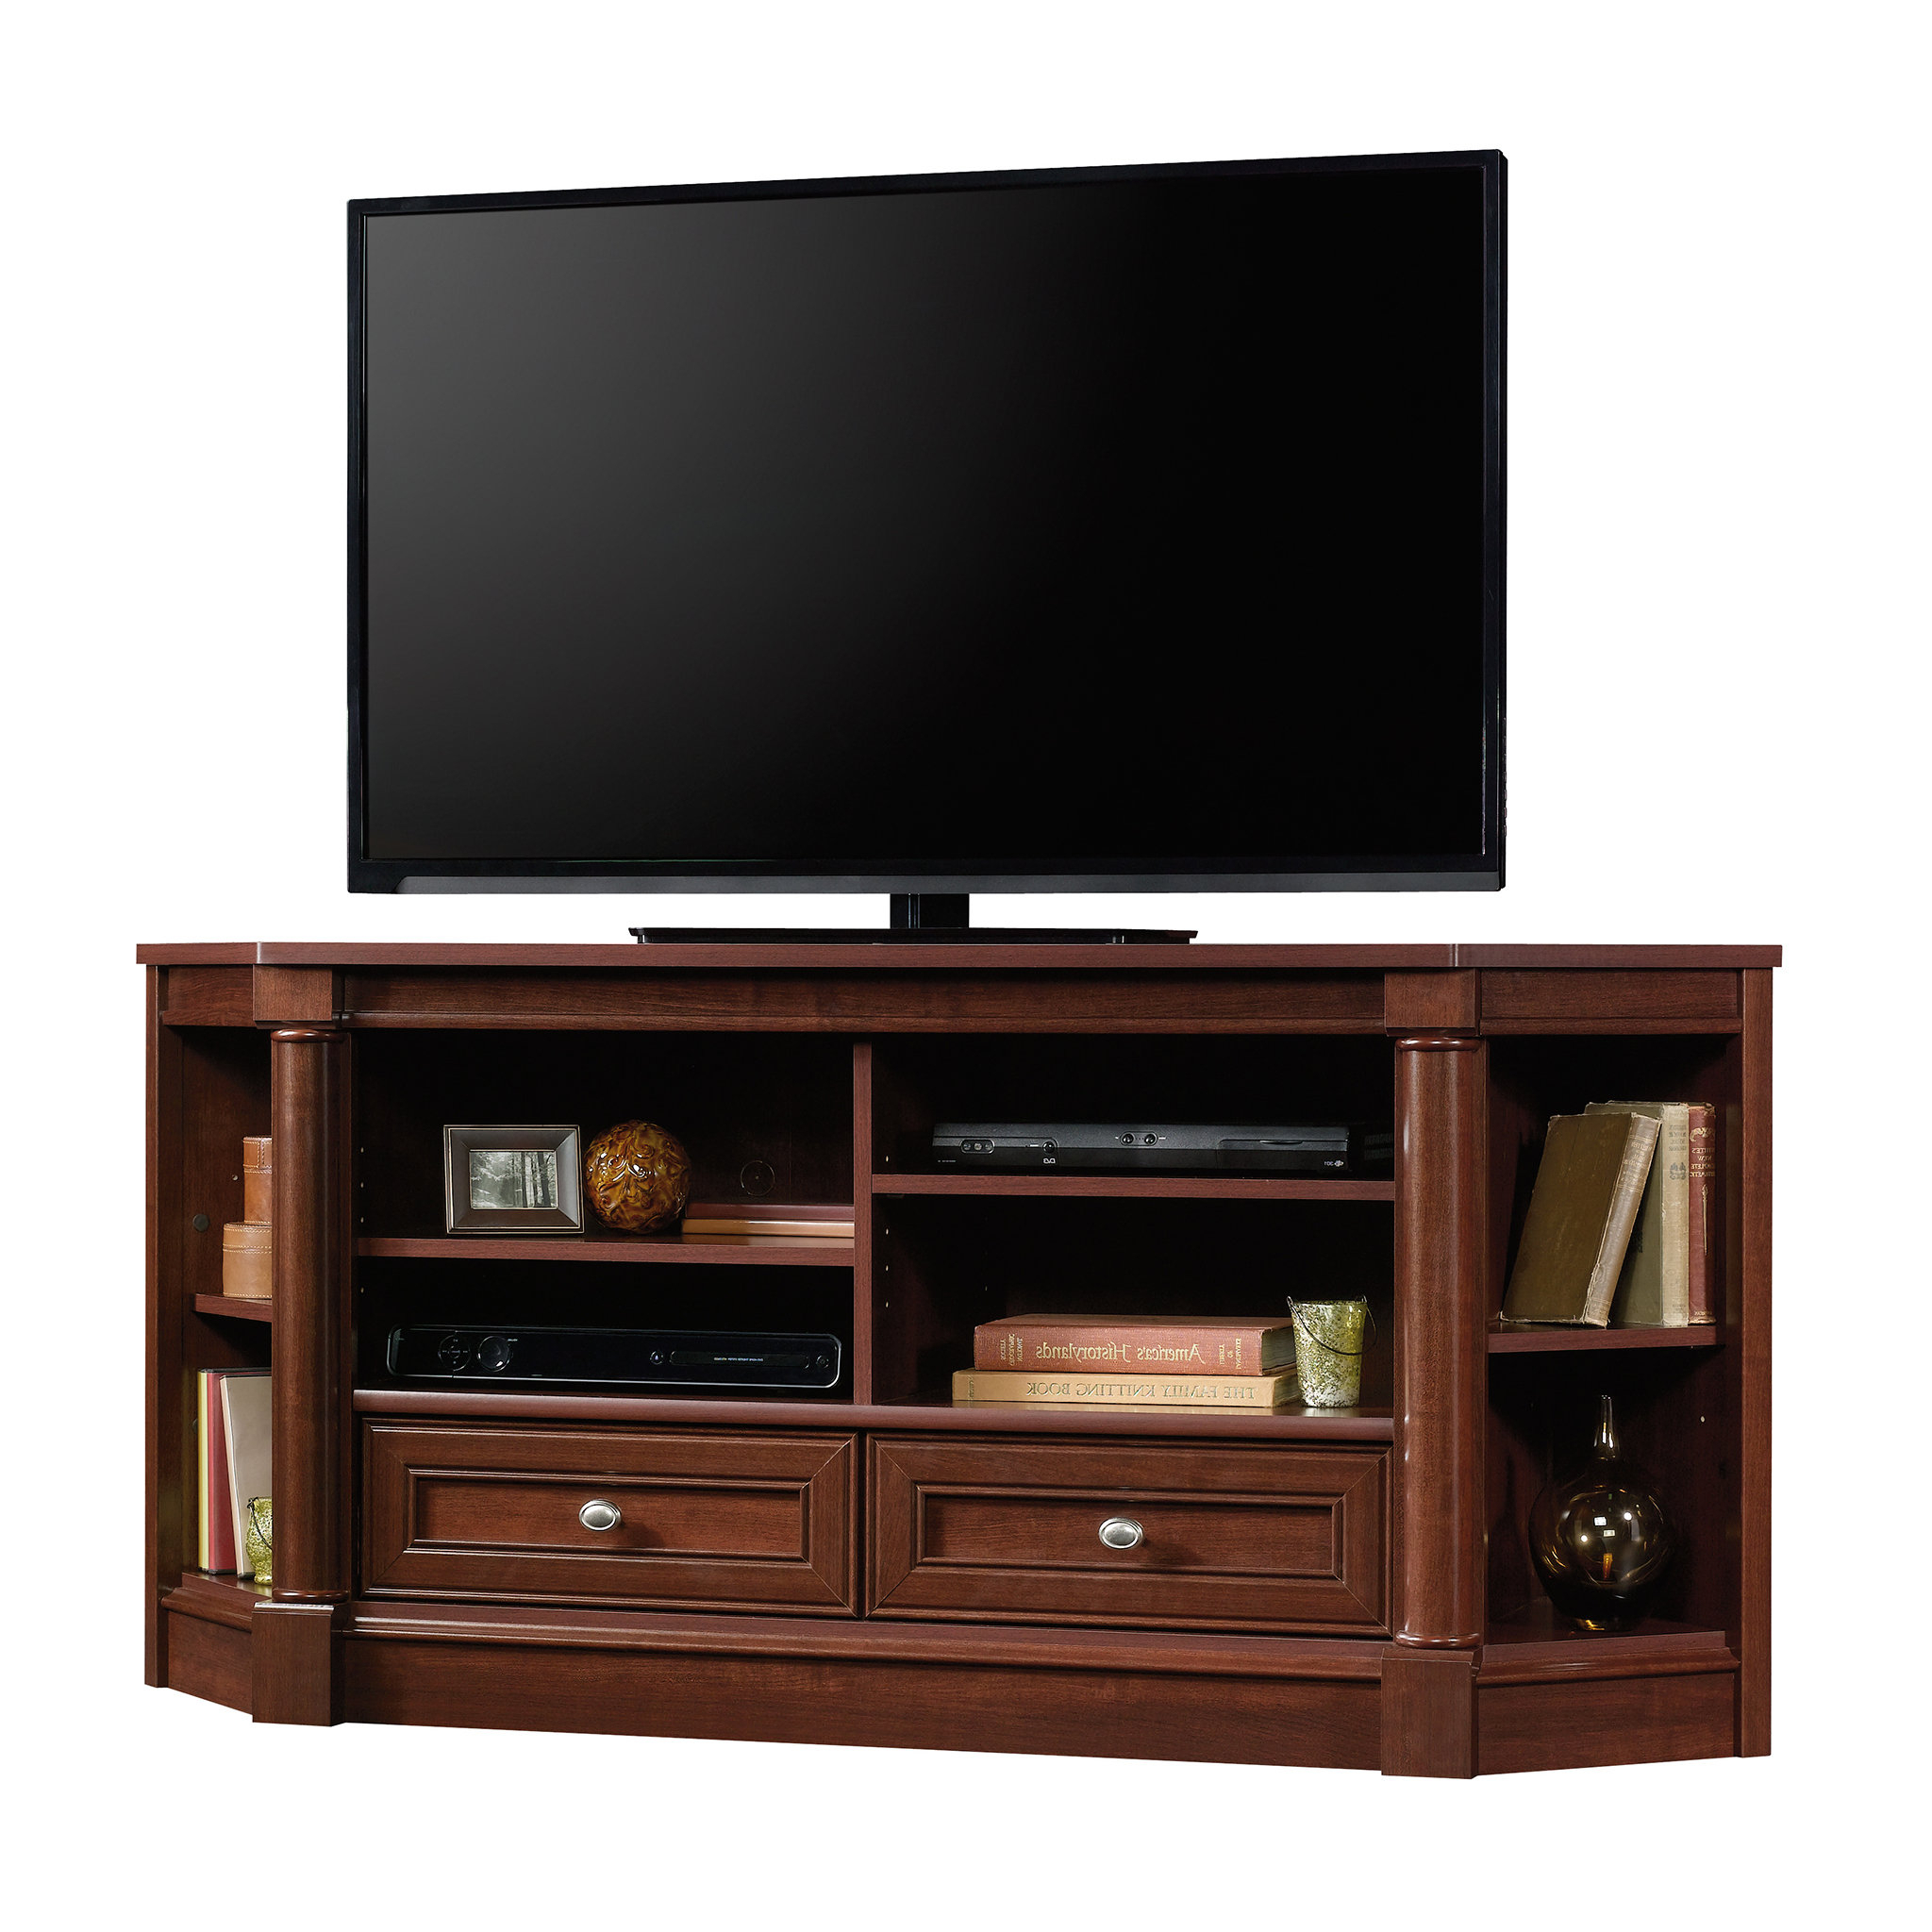 "Real Wood Corner Tv Stands For 2018 Orviston Corner Tv Stand For Tvs Up To 60"" & Reviews (View 5 of 20)"